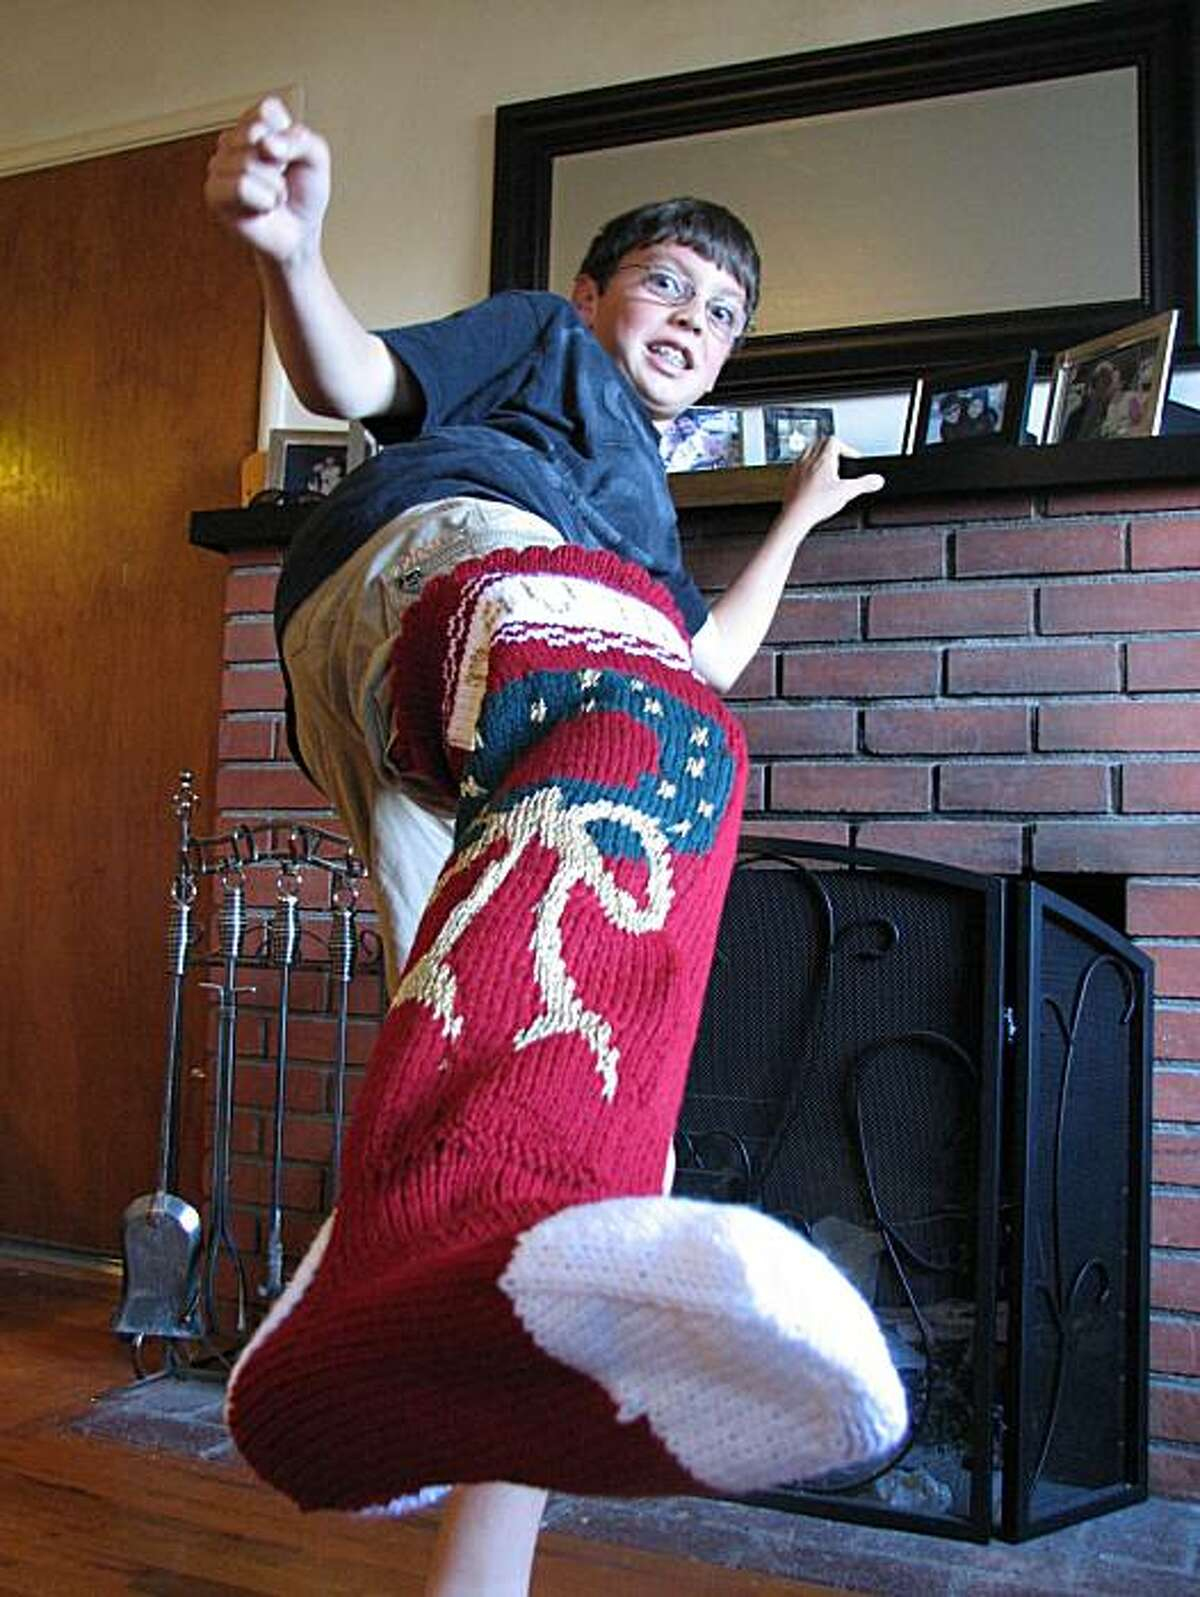 David Twohig, 12, of Pacific Grove, CA, tests the space capacity of a Grandma May Christmas stocking.